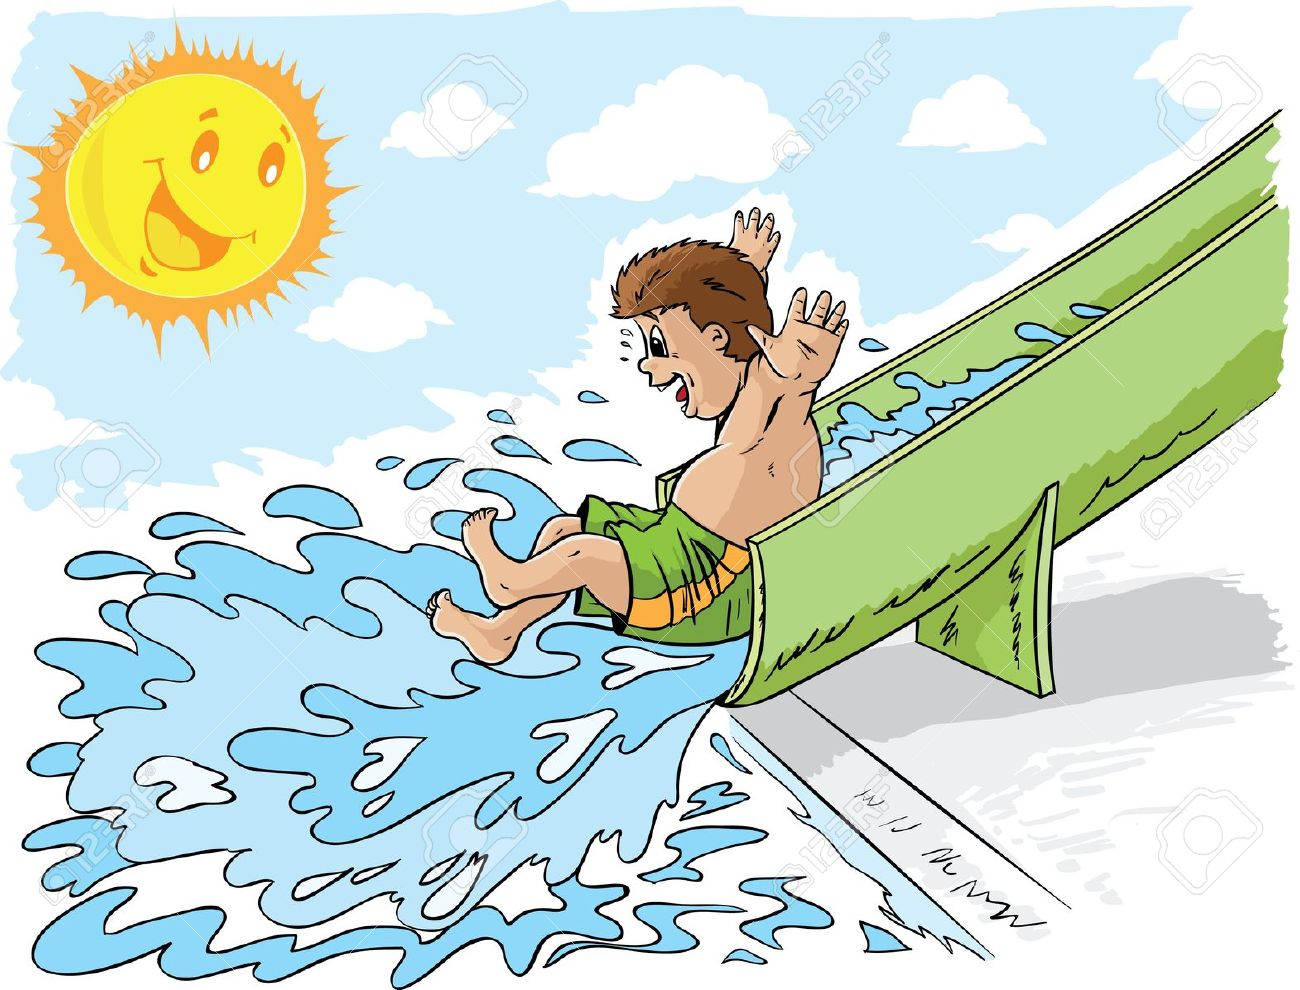 Water slide clipart images.